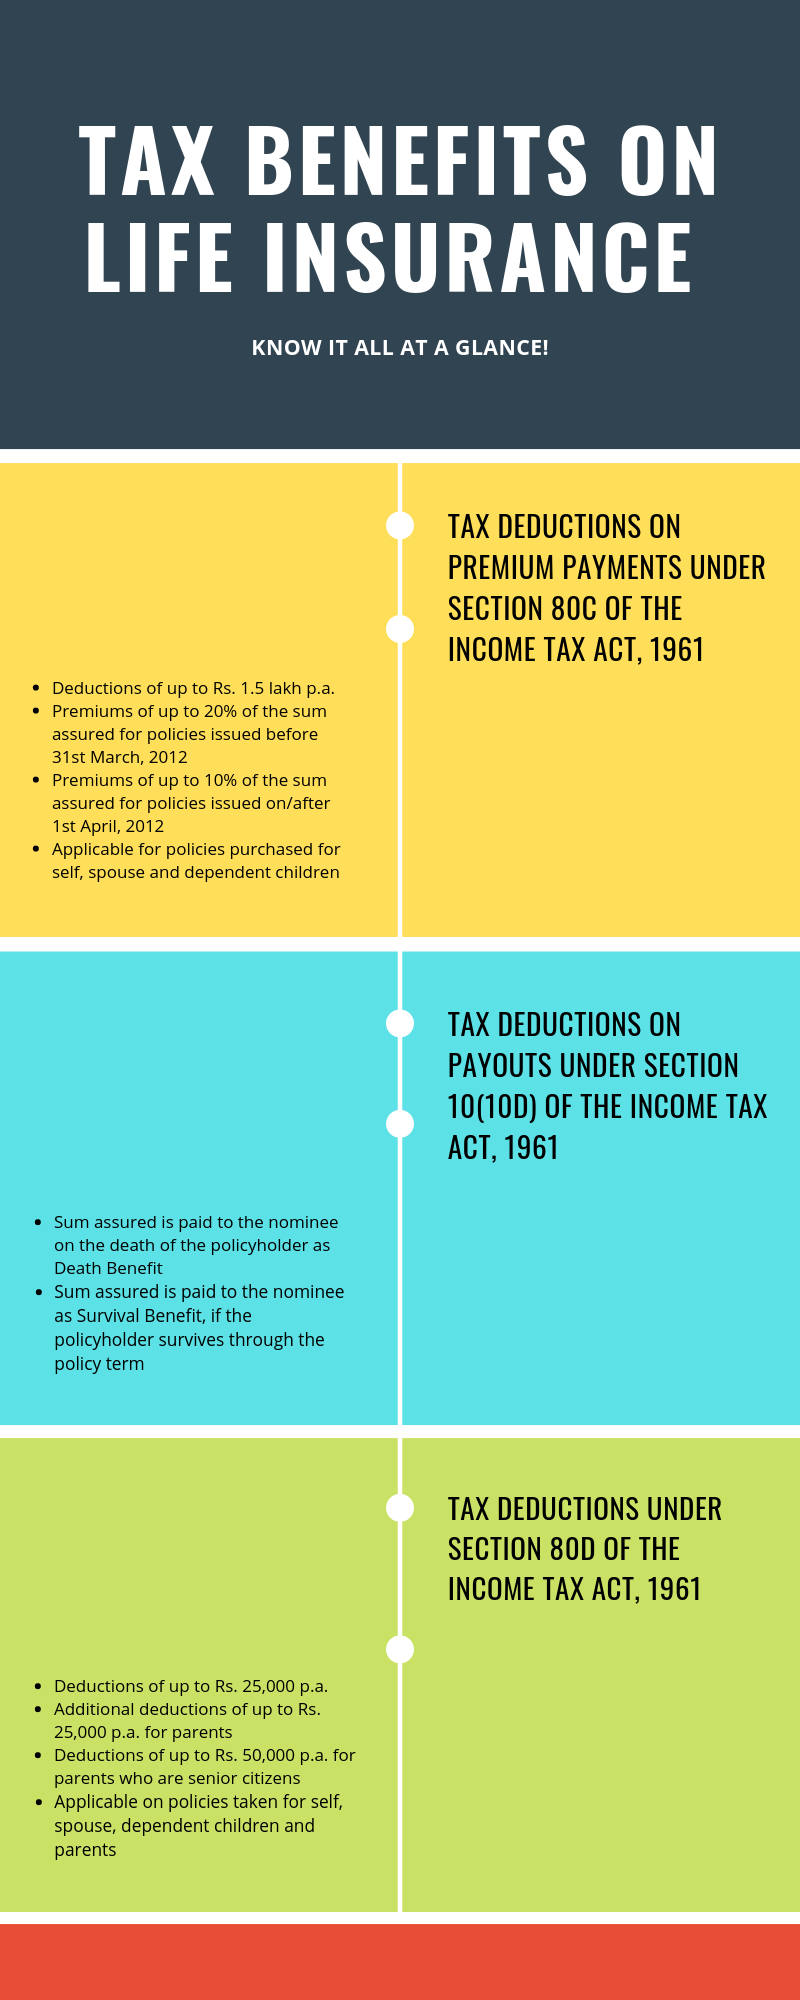 Read All About Life Insurance Tax Benefits